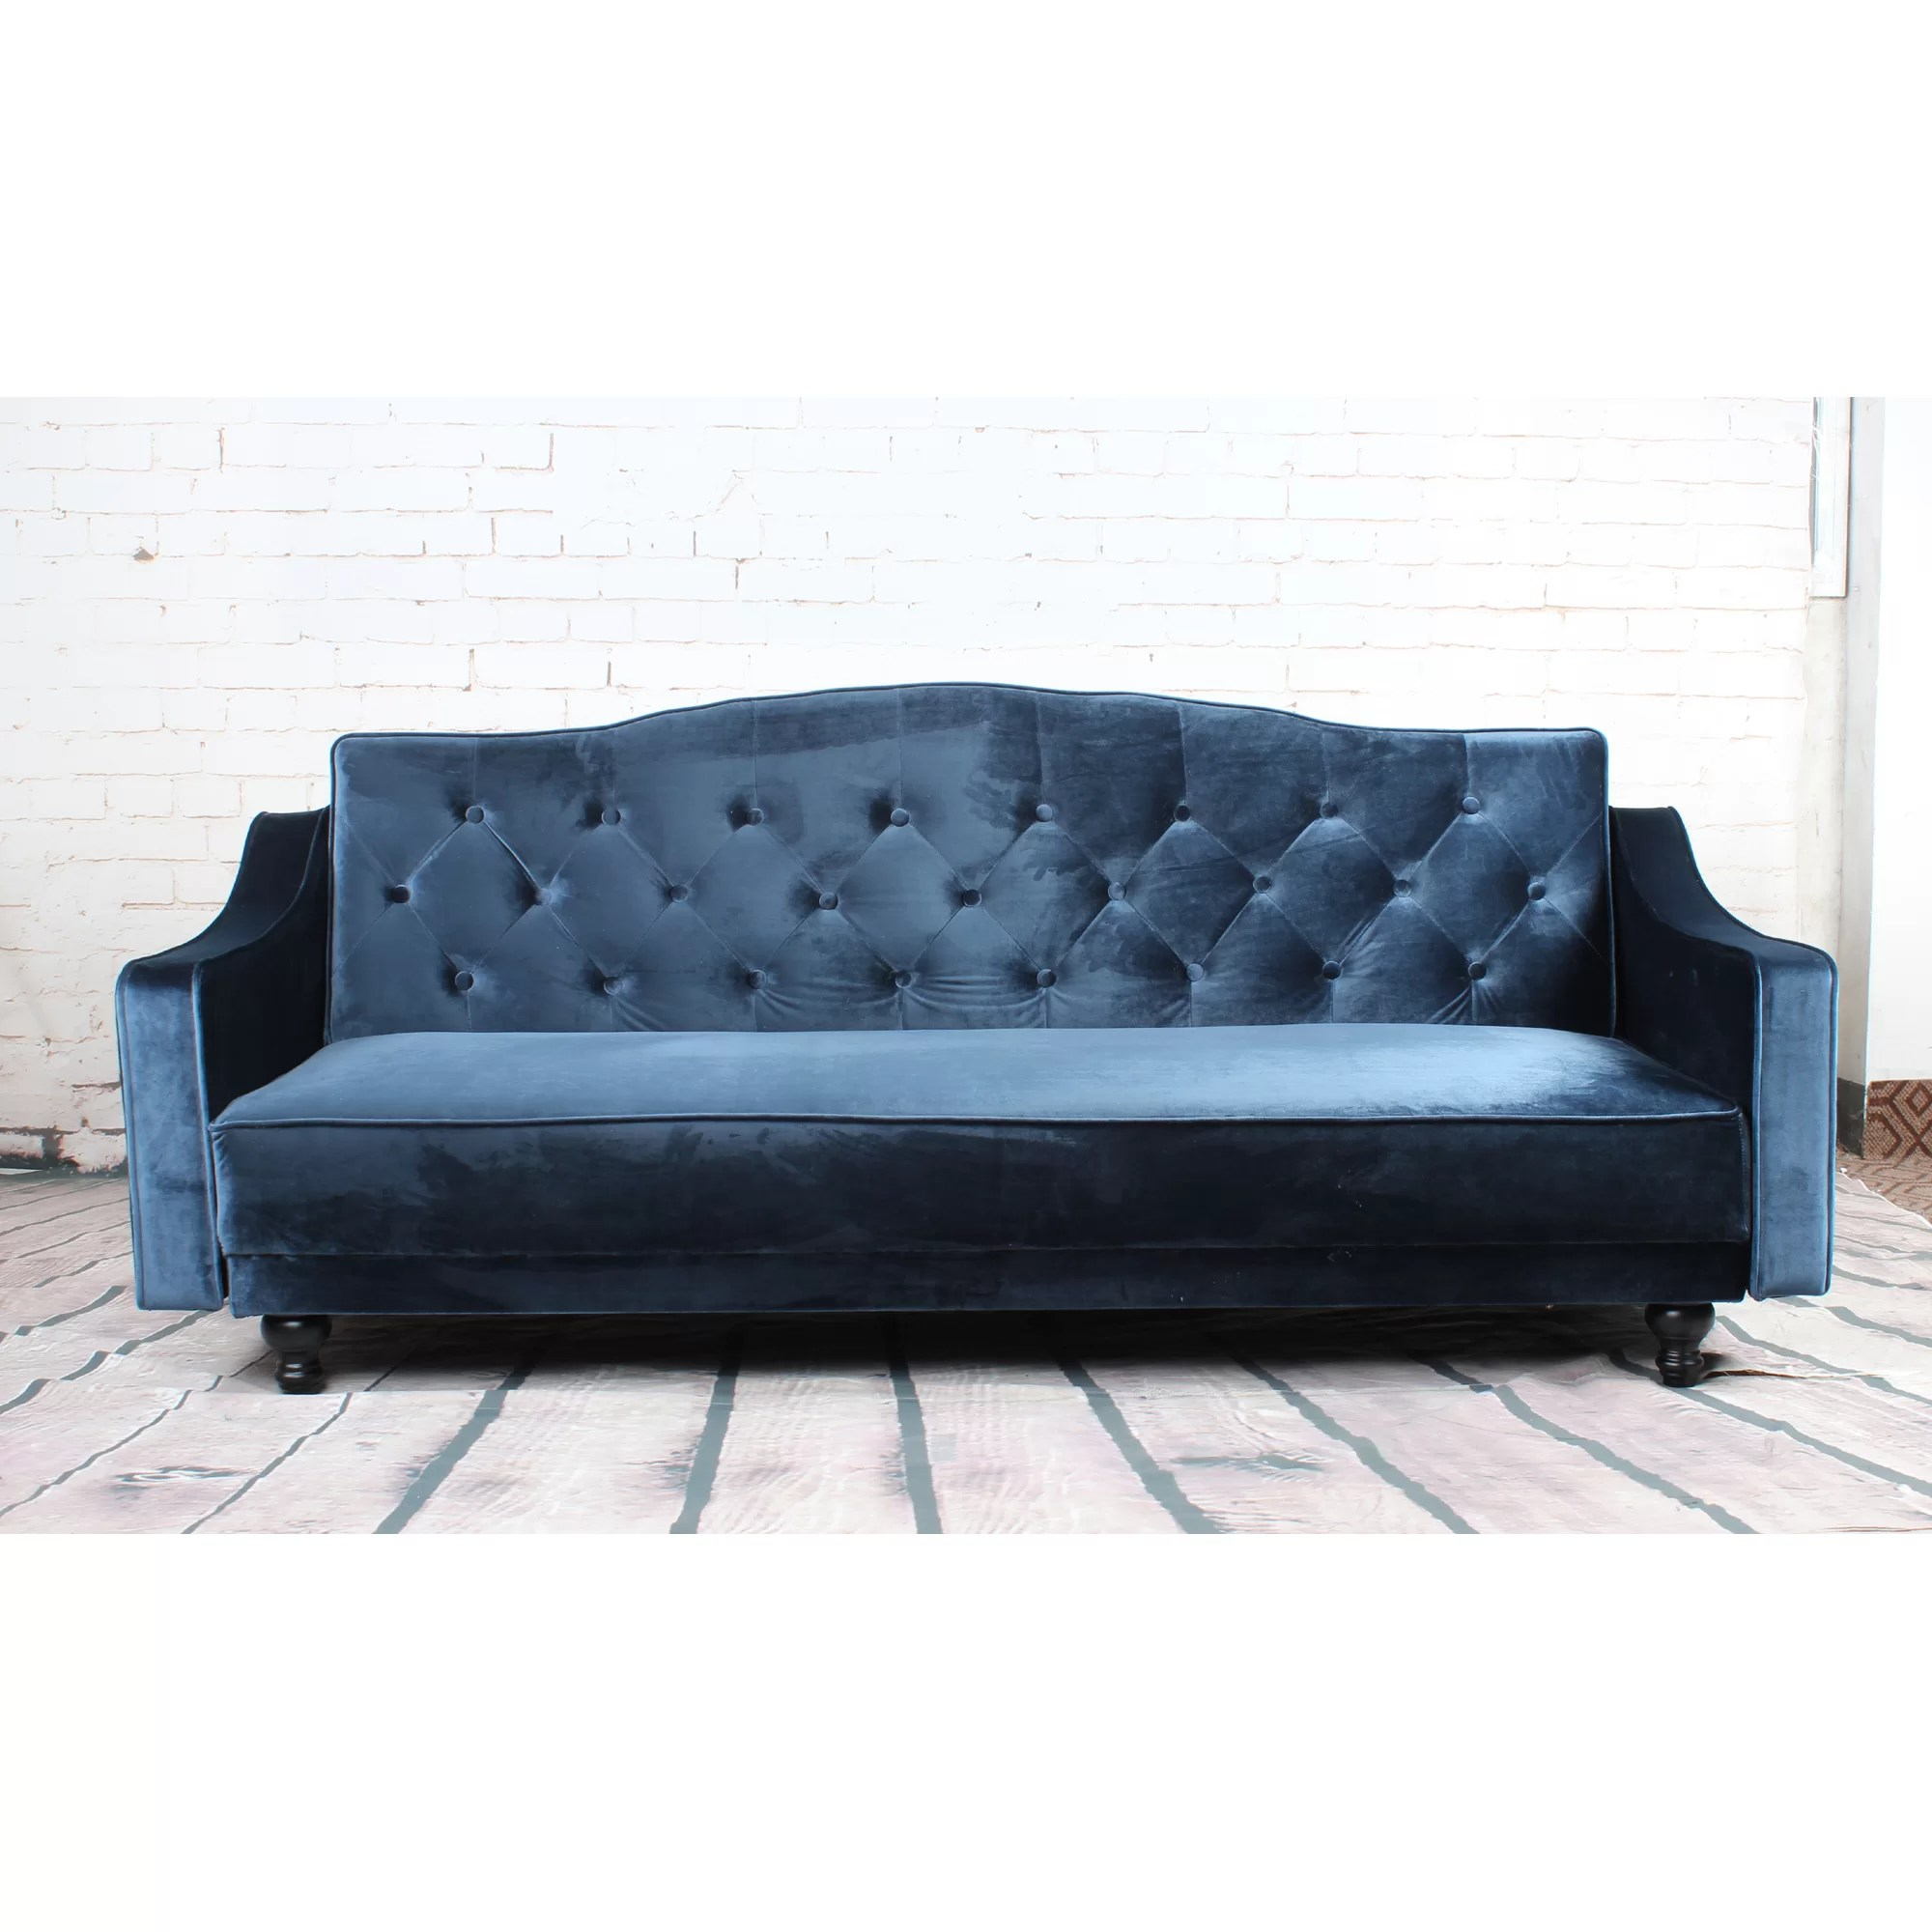 Sofa Gumtree Paignton Mattress For Sale Mattress For Sale Torquay